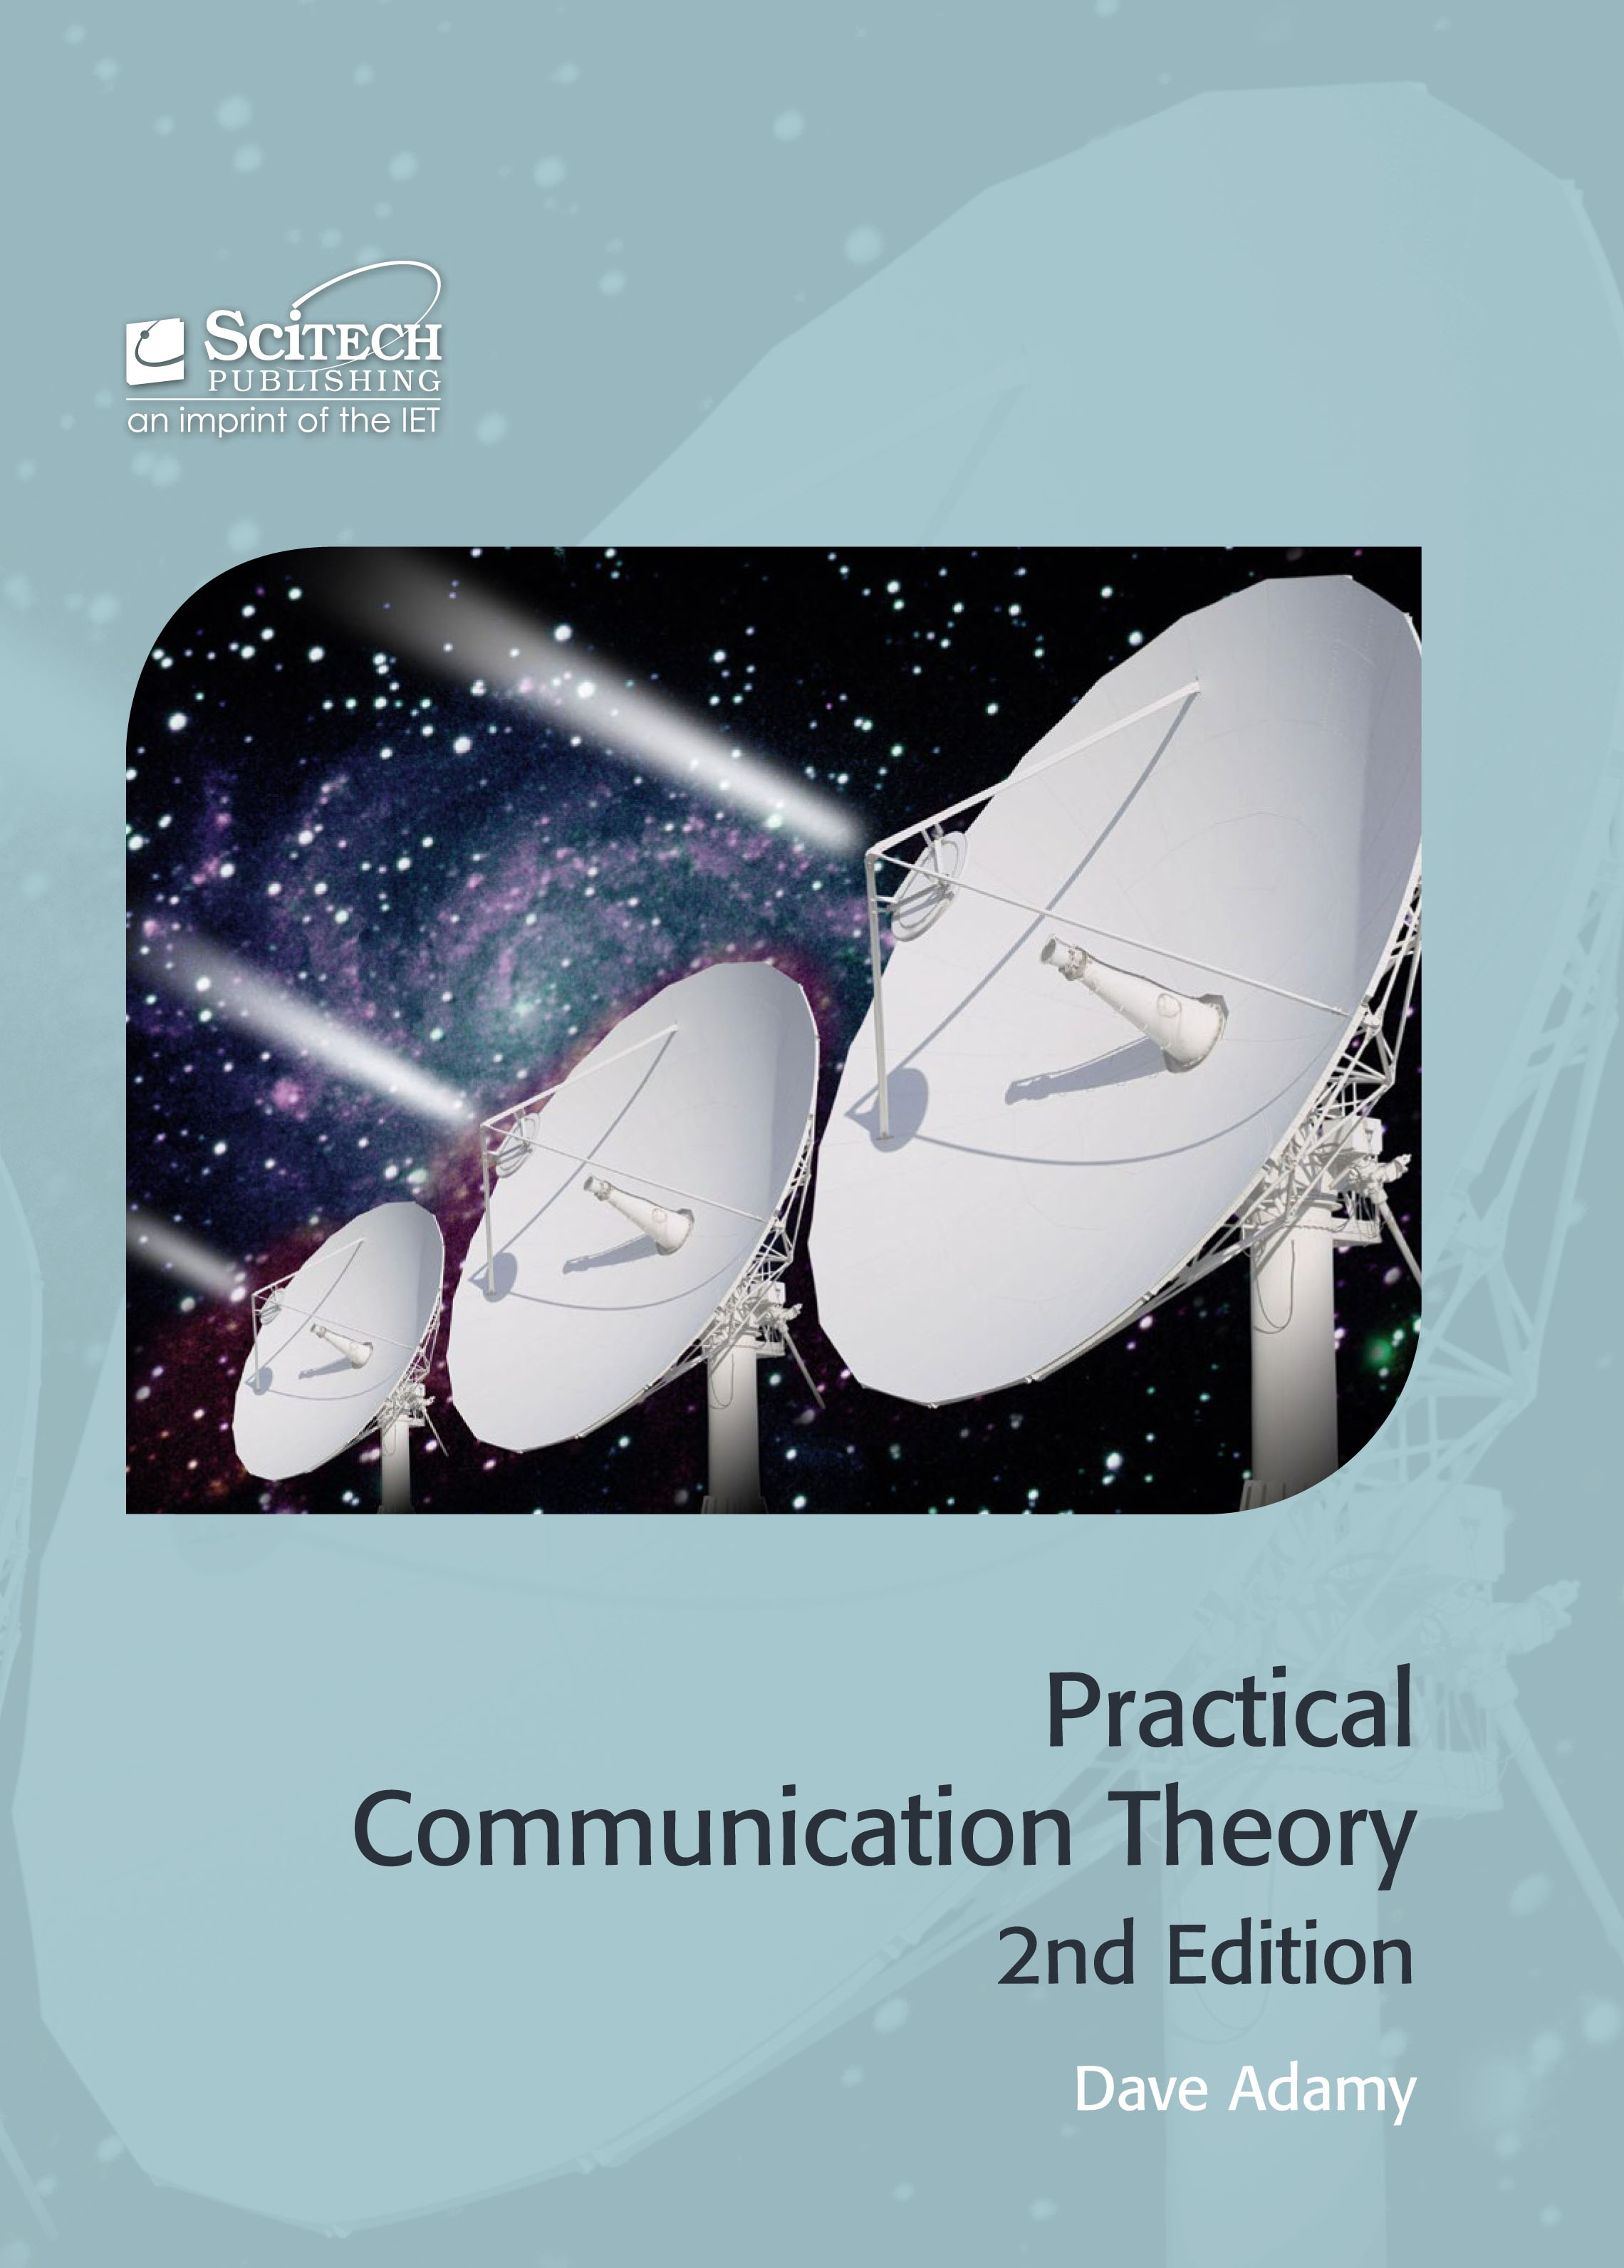 Practical Communication Theory, 2nd Edition